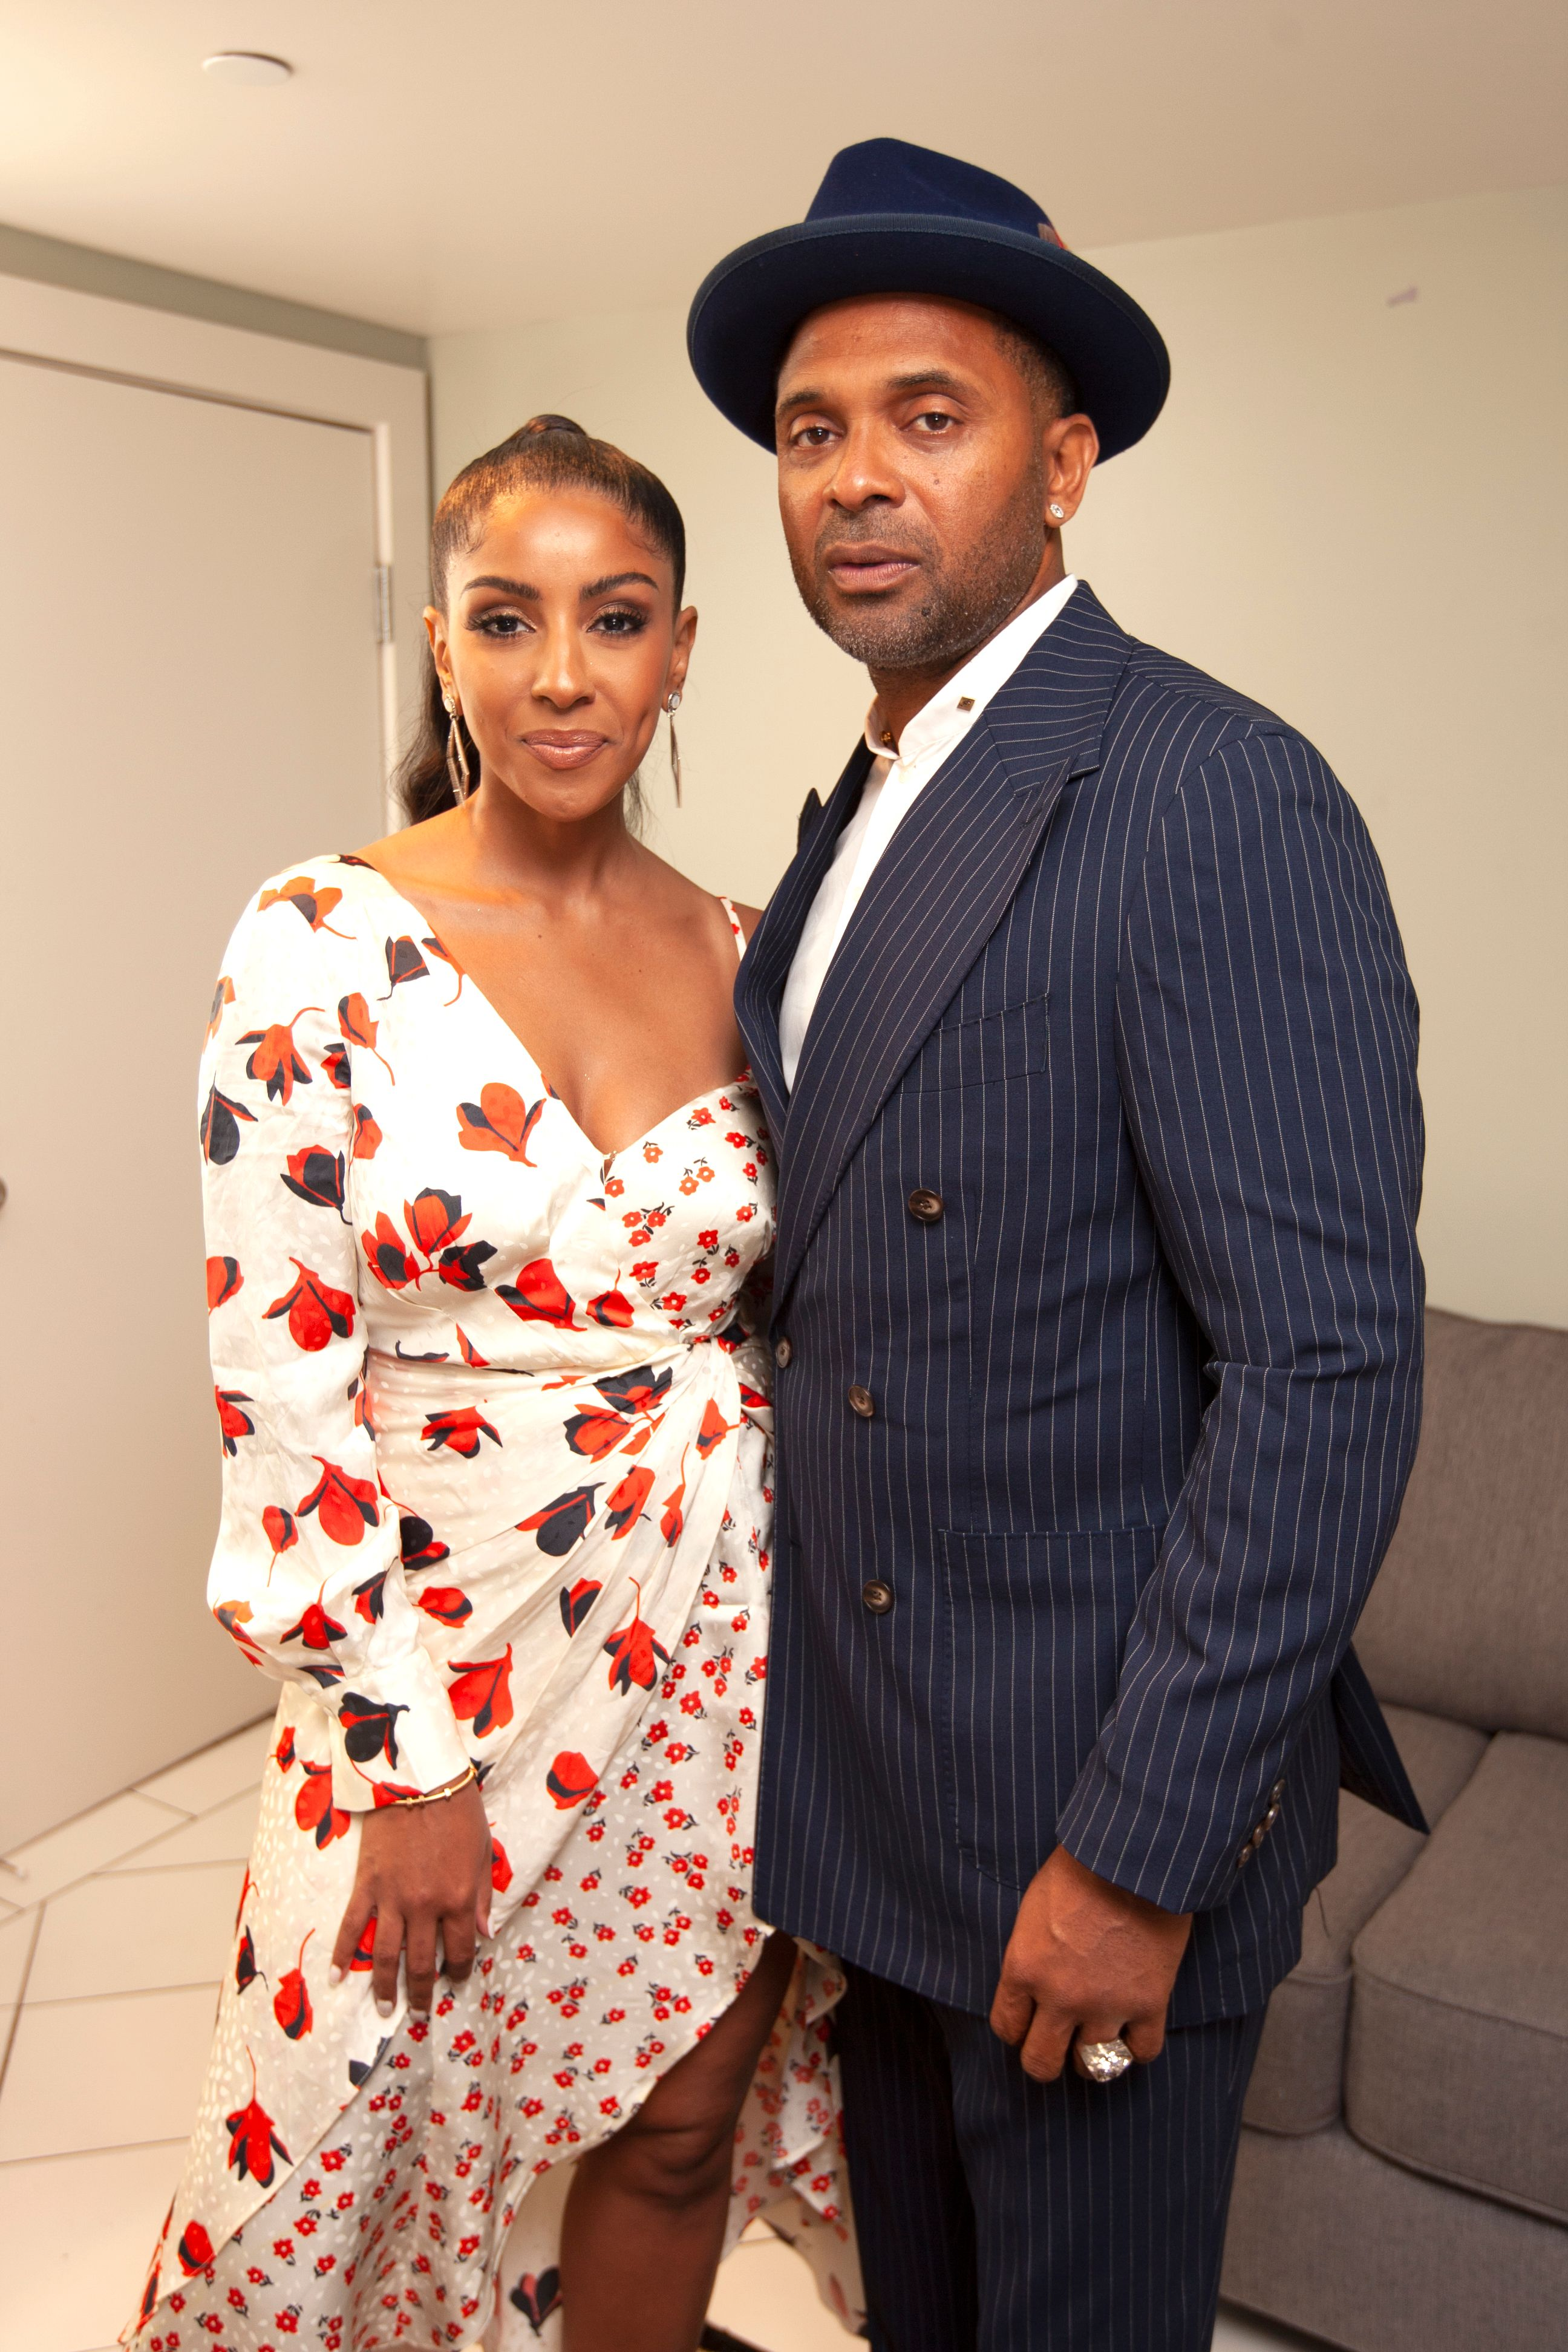 """Mike Epps and Kyra Epps during the """"Essence After Dark Friends"""" comedy event at the Orpheum Theater on Saturday July 6, 2019 in New Orleans, Louisiana. 